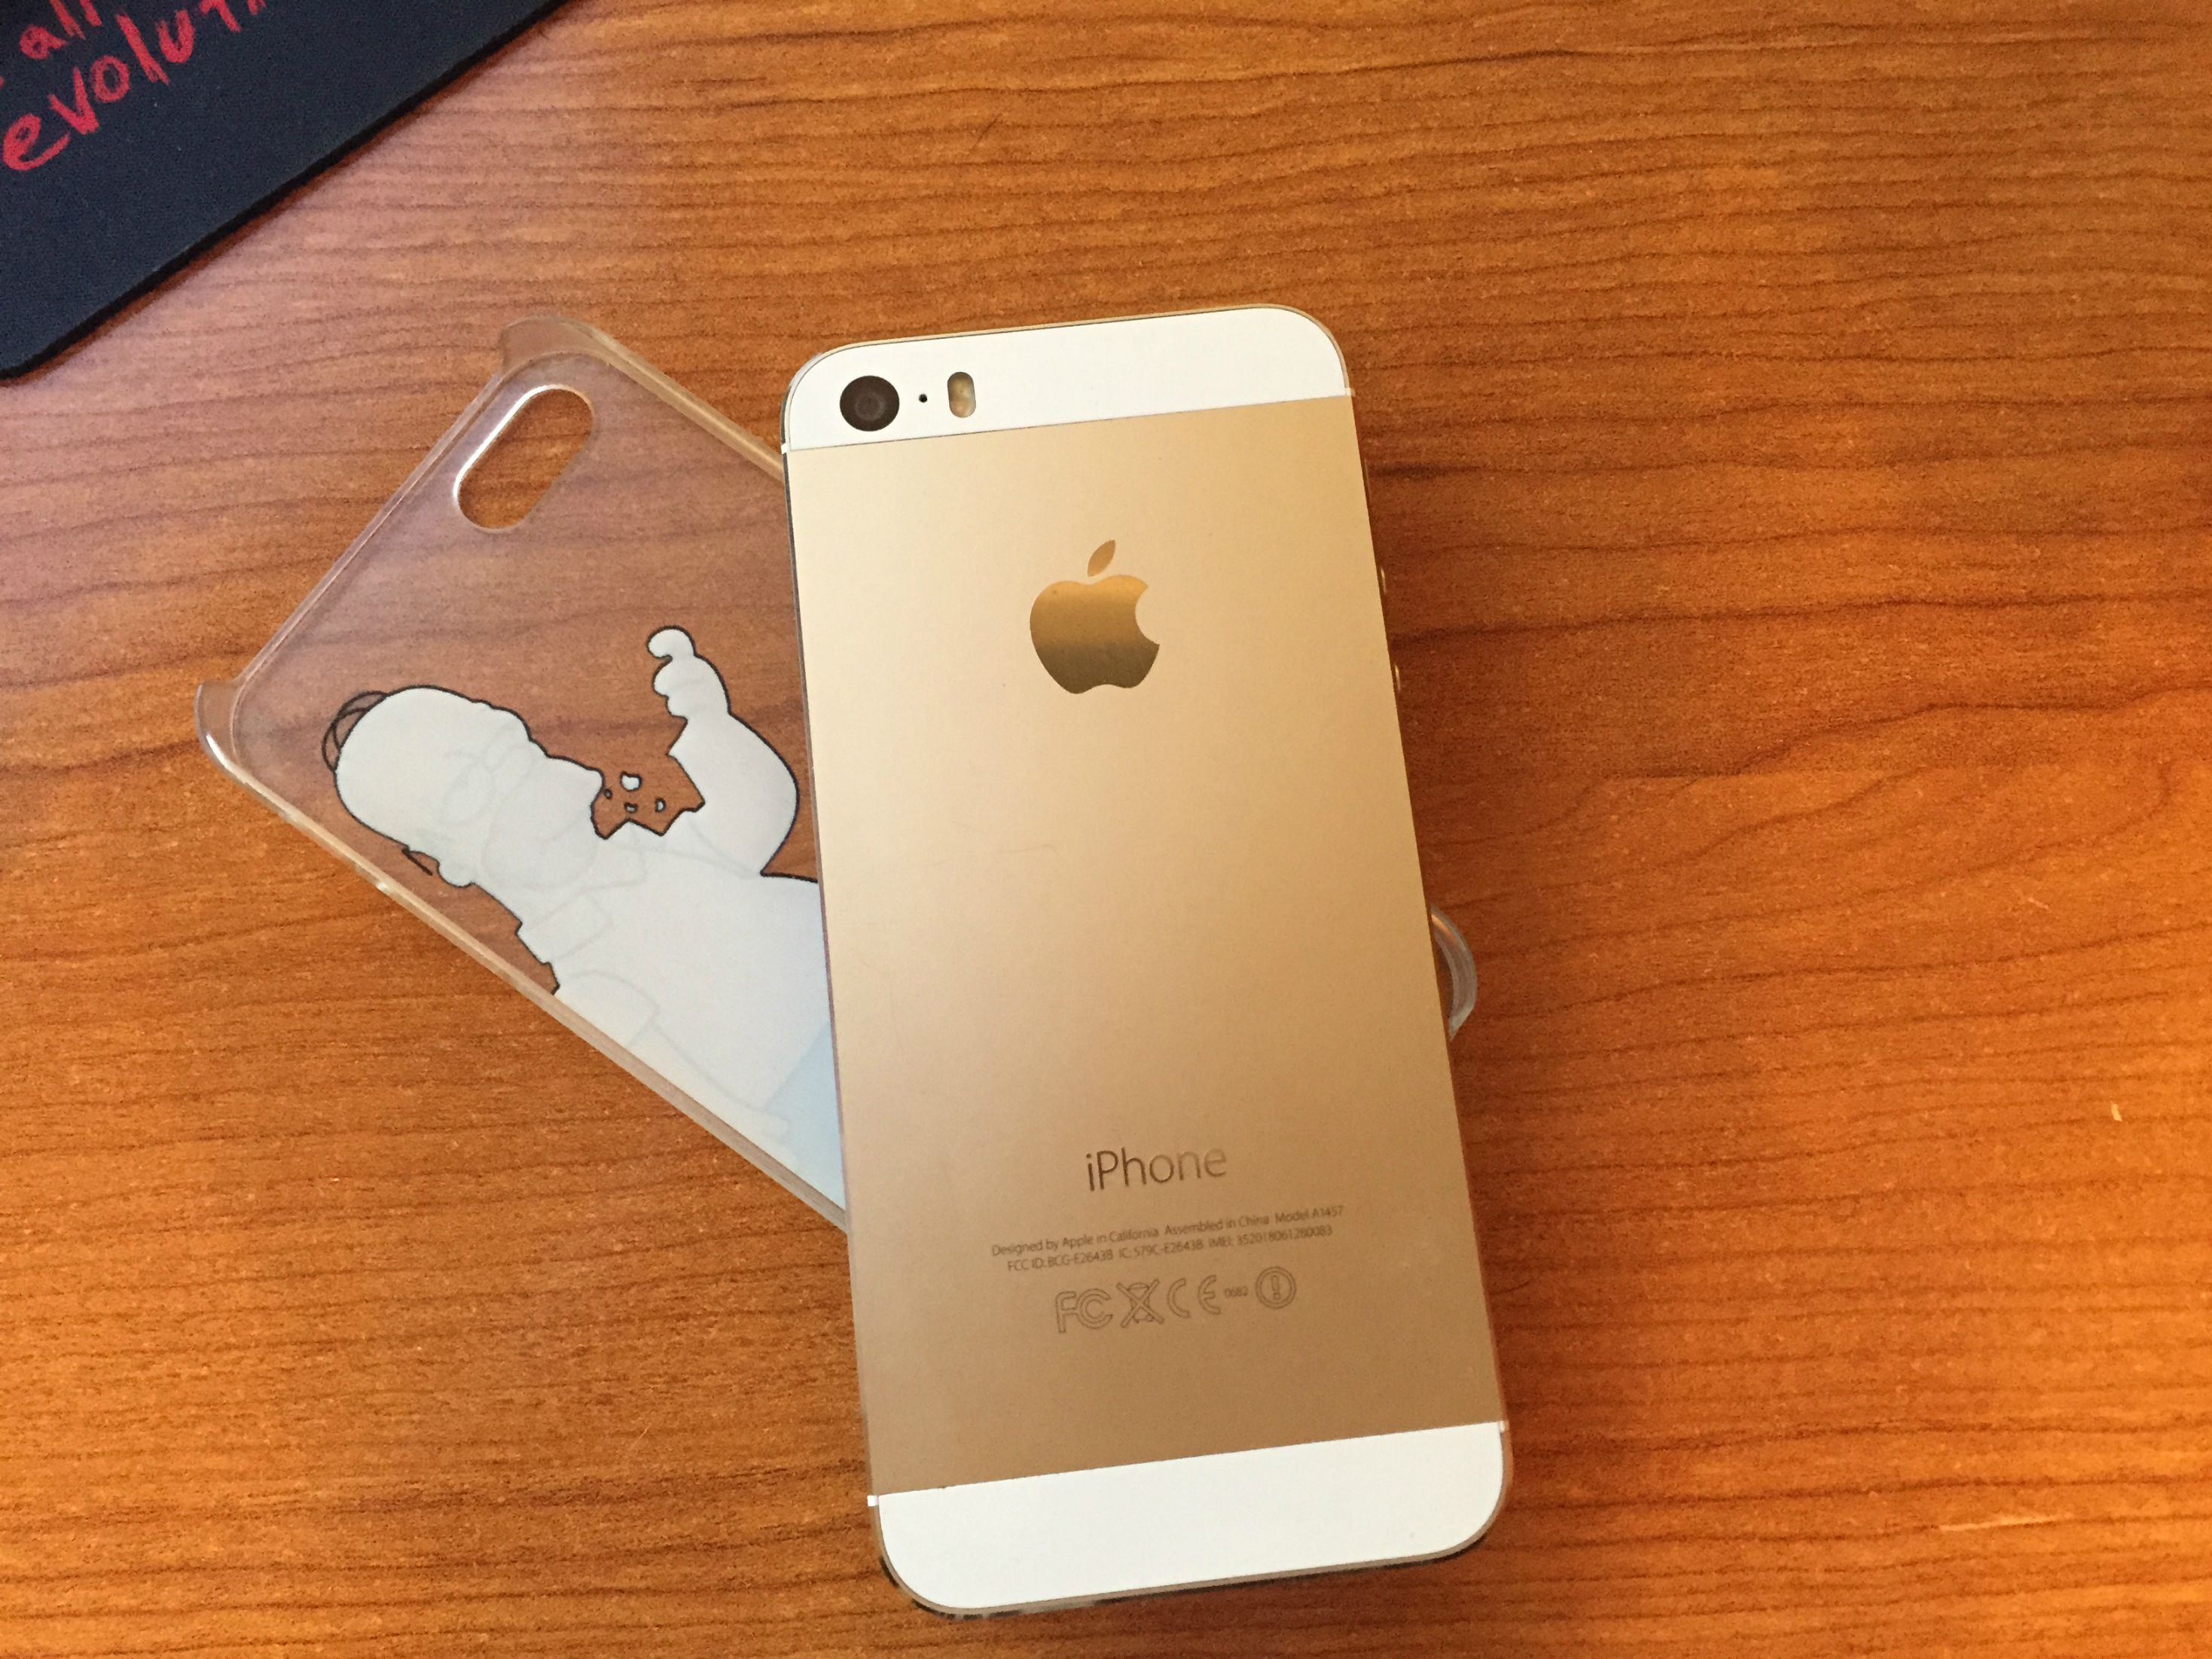 Precio De Iphone 5s Libre Vendo Iphone 5s Gold 16gb Libre Barato